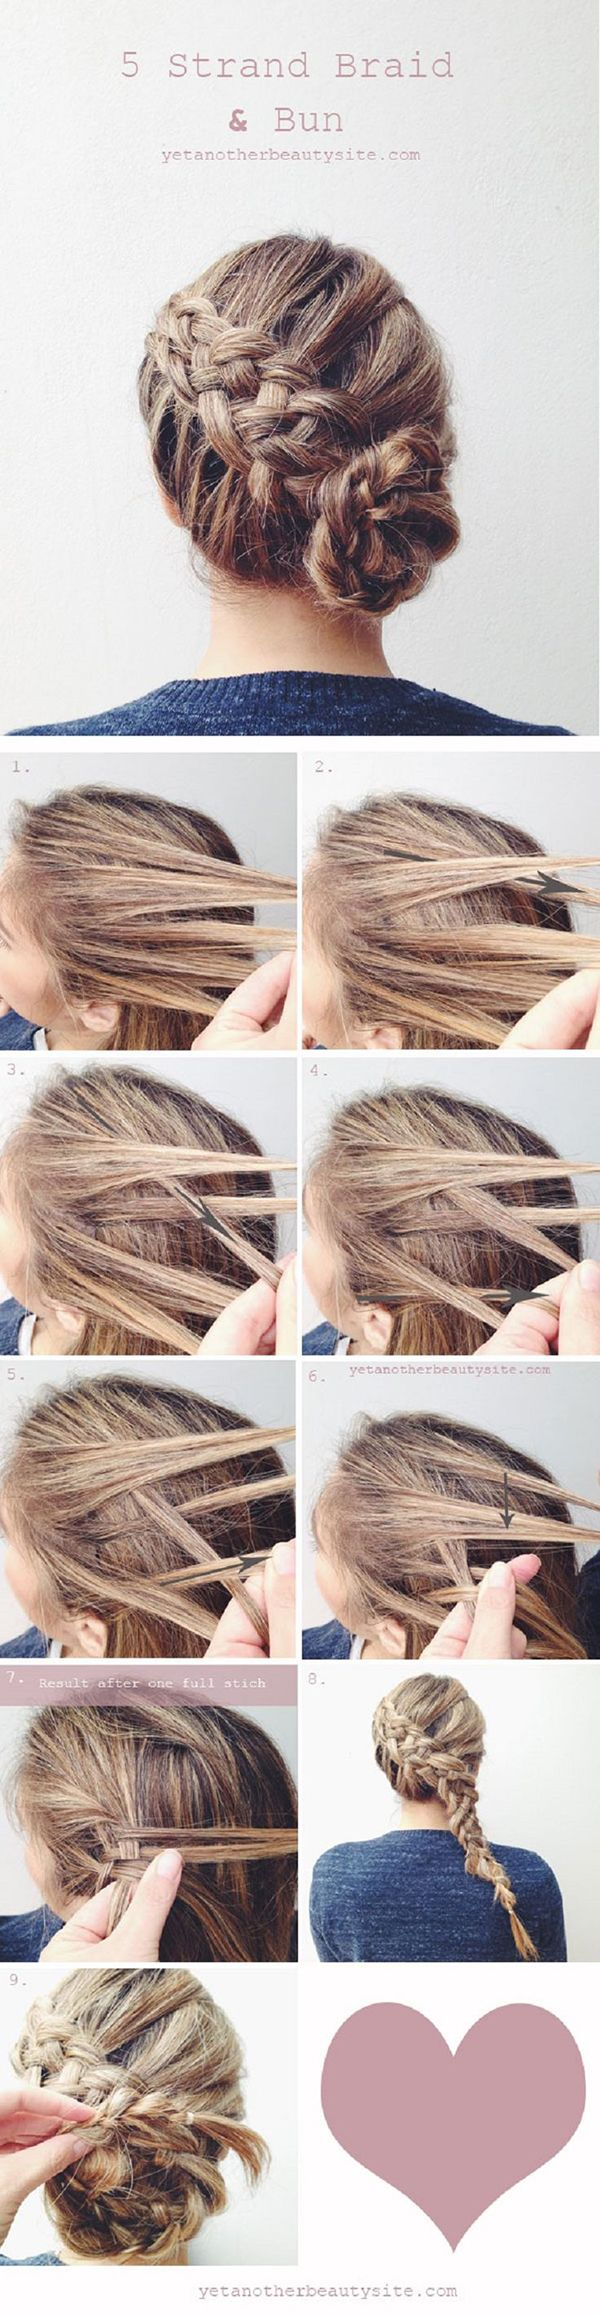 18 Easy Braided Bun Hairstyles To Try Asap Hair Inspirations